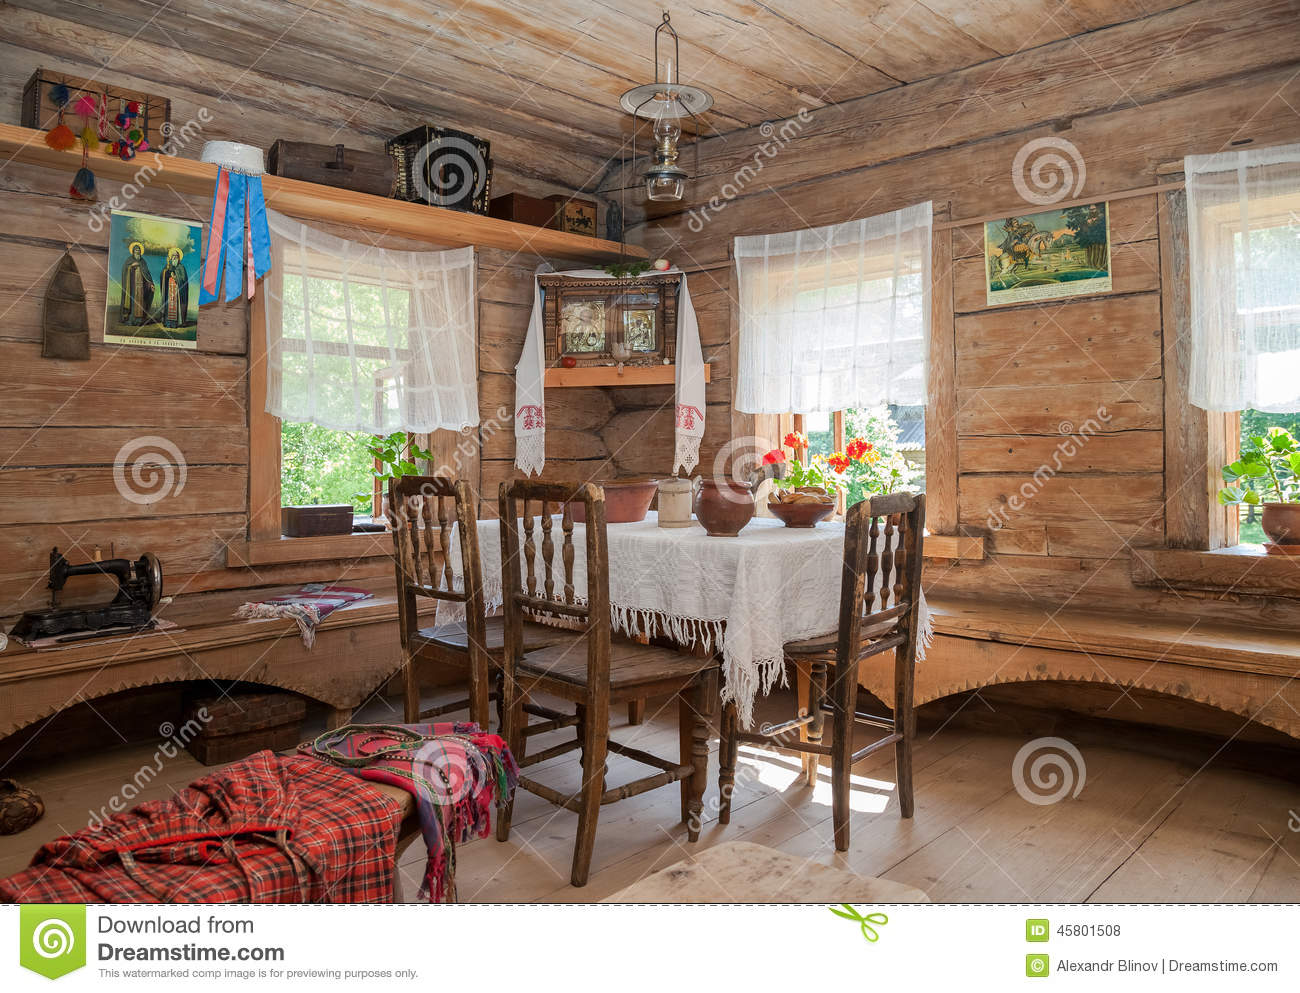 maison en bois interieur - int rieur de vieille maison en bois rurale photo stock